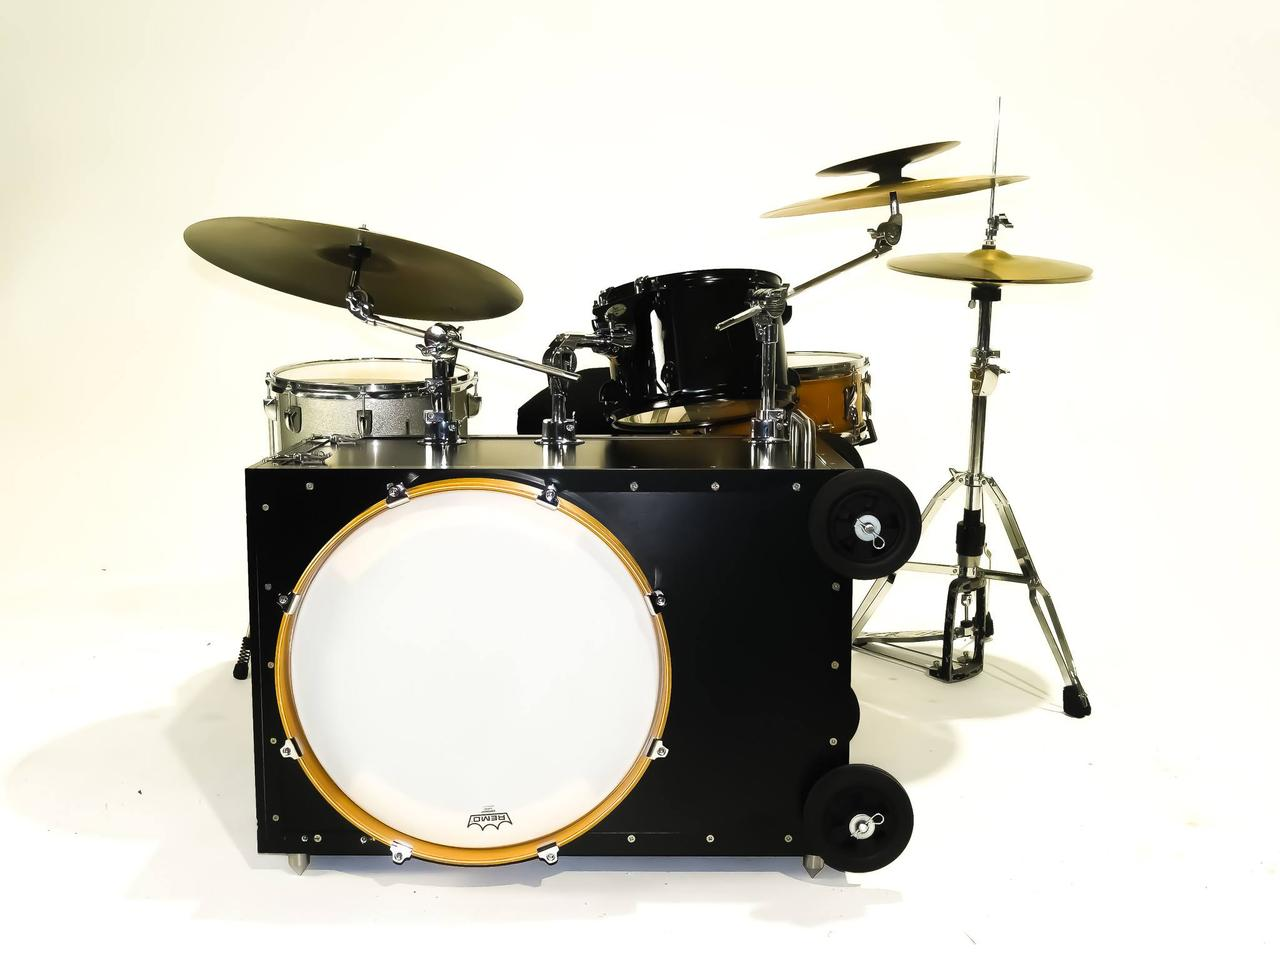 The Drum Roller project is raising production funds on Kickstarter